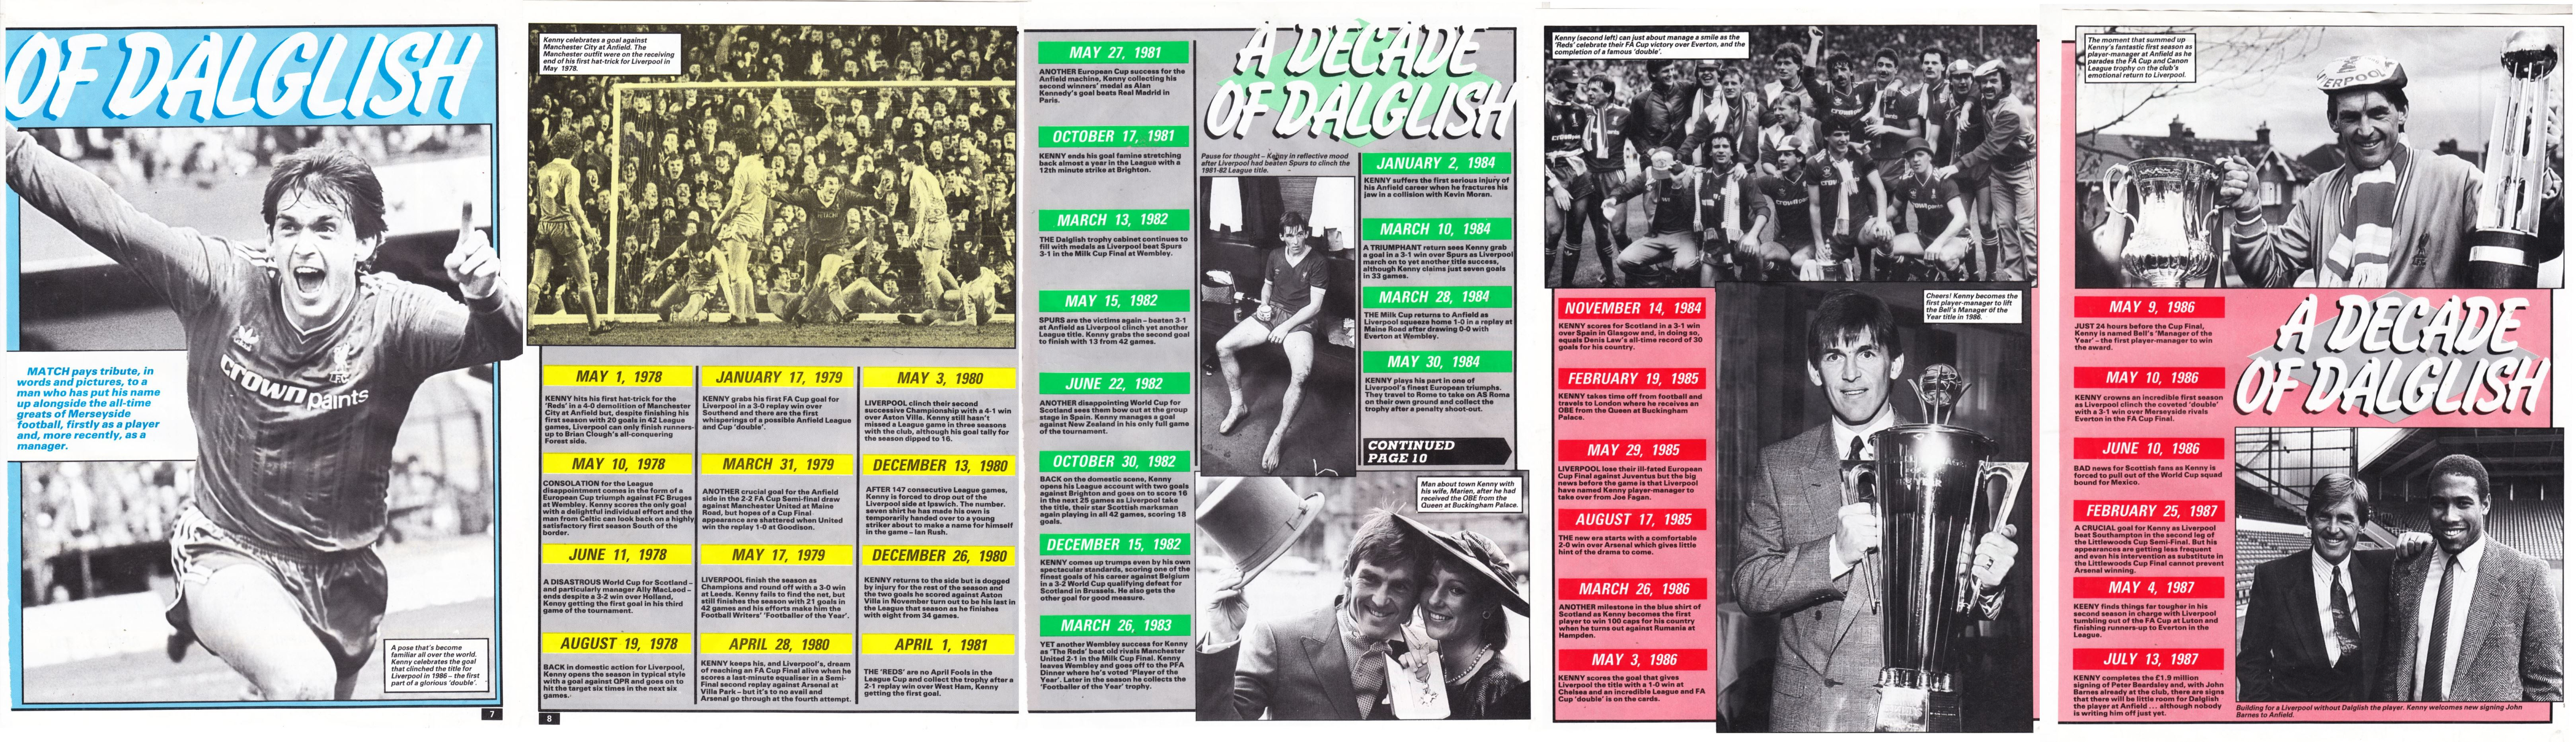 A decade of Dalglish 1977-1987